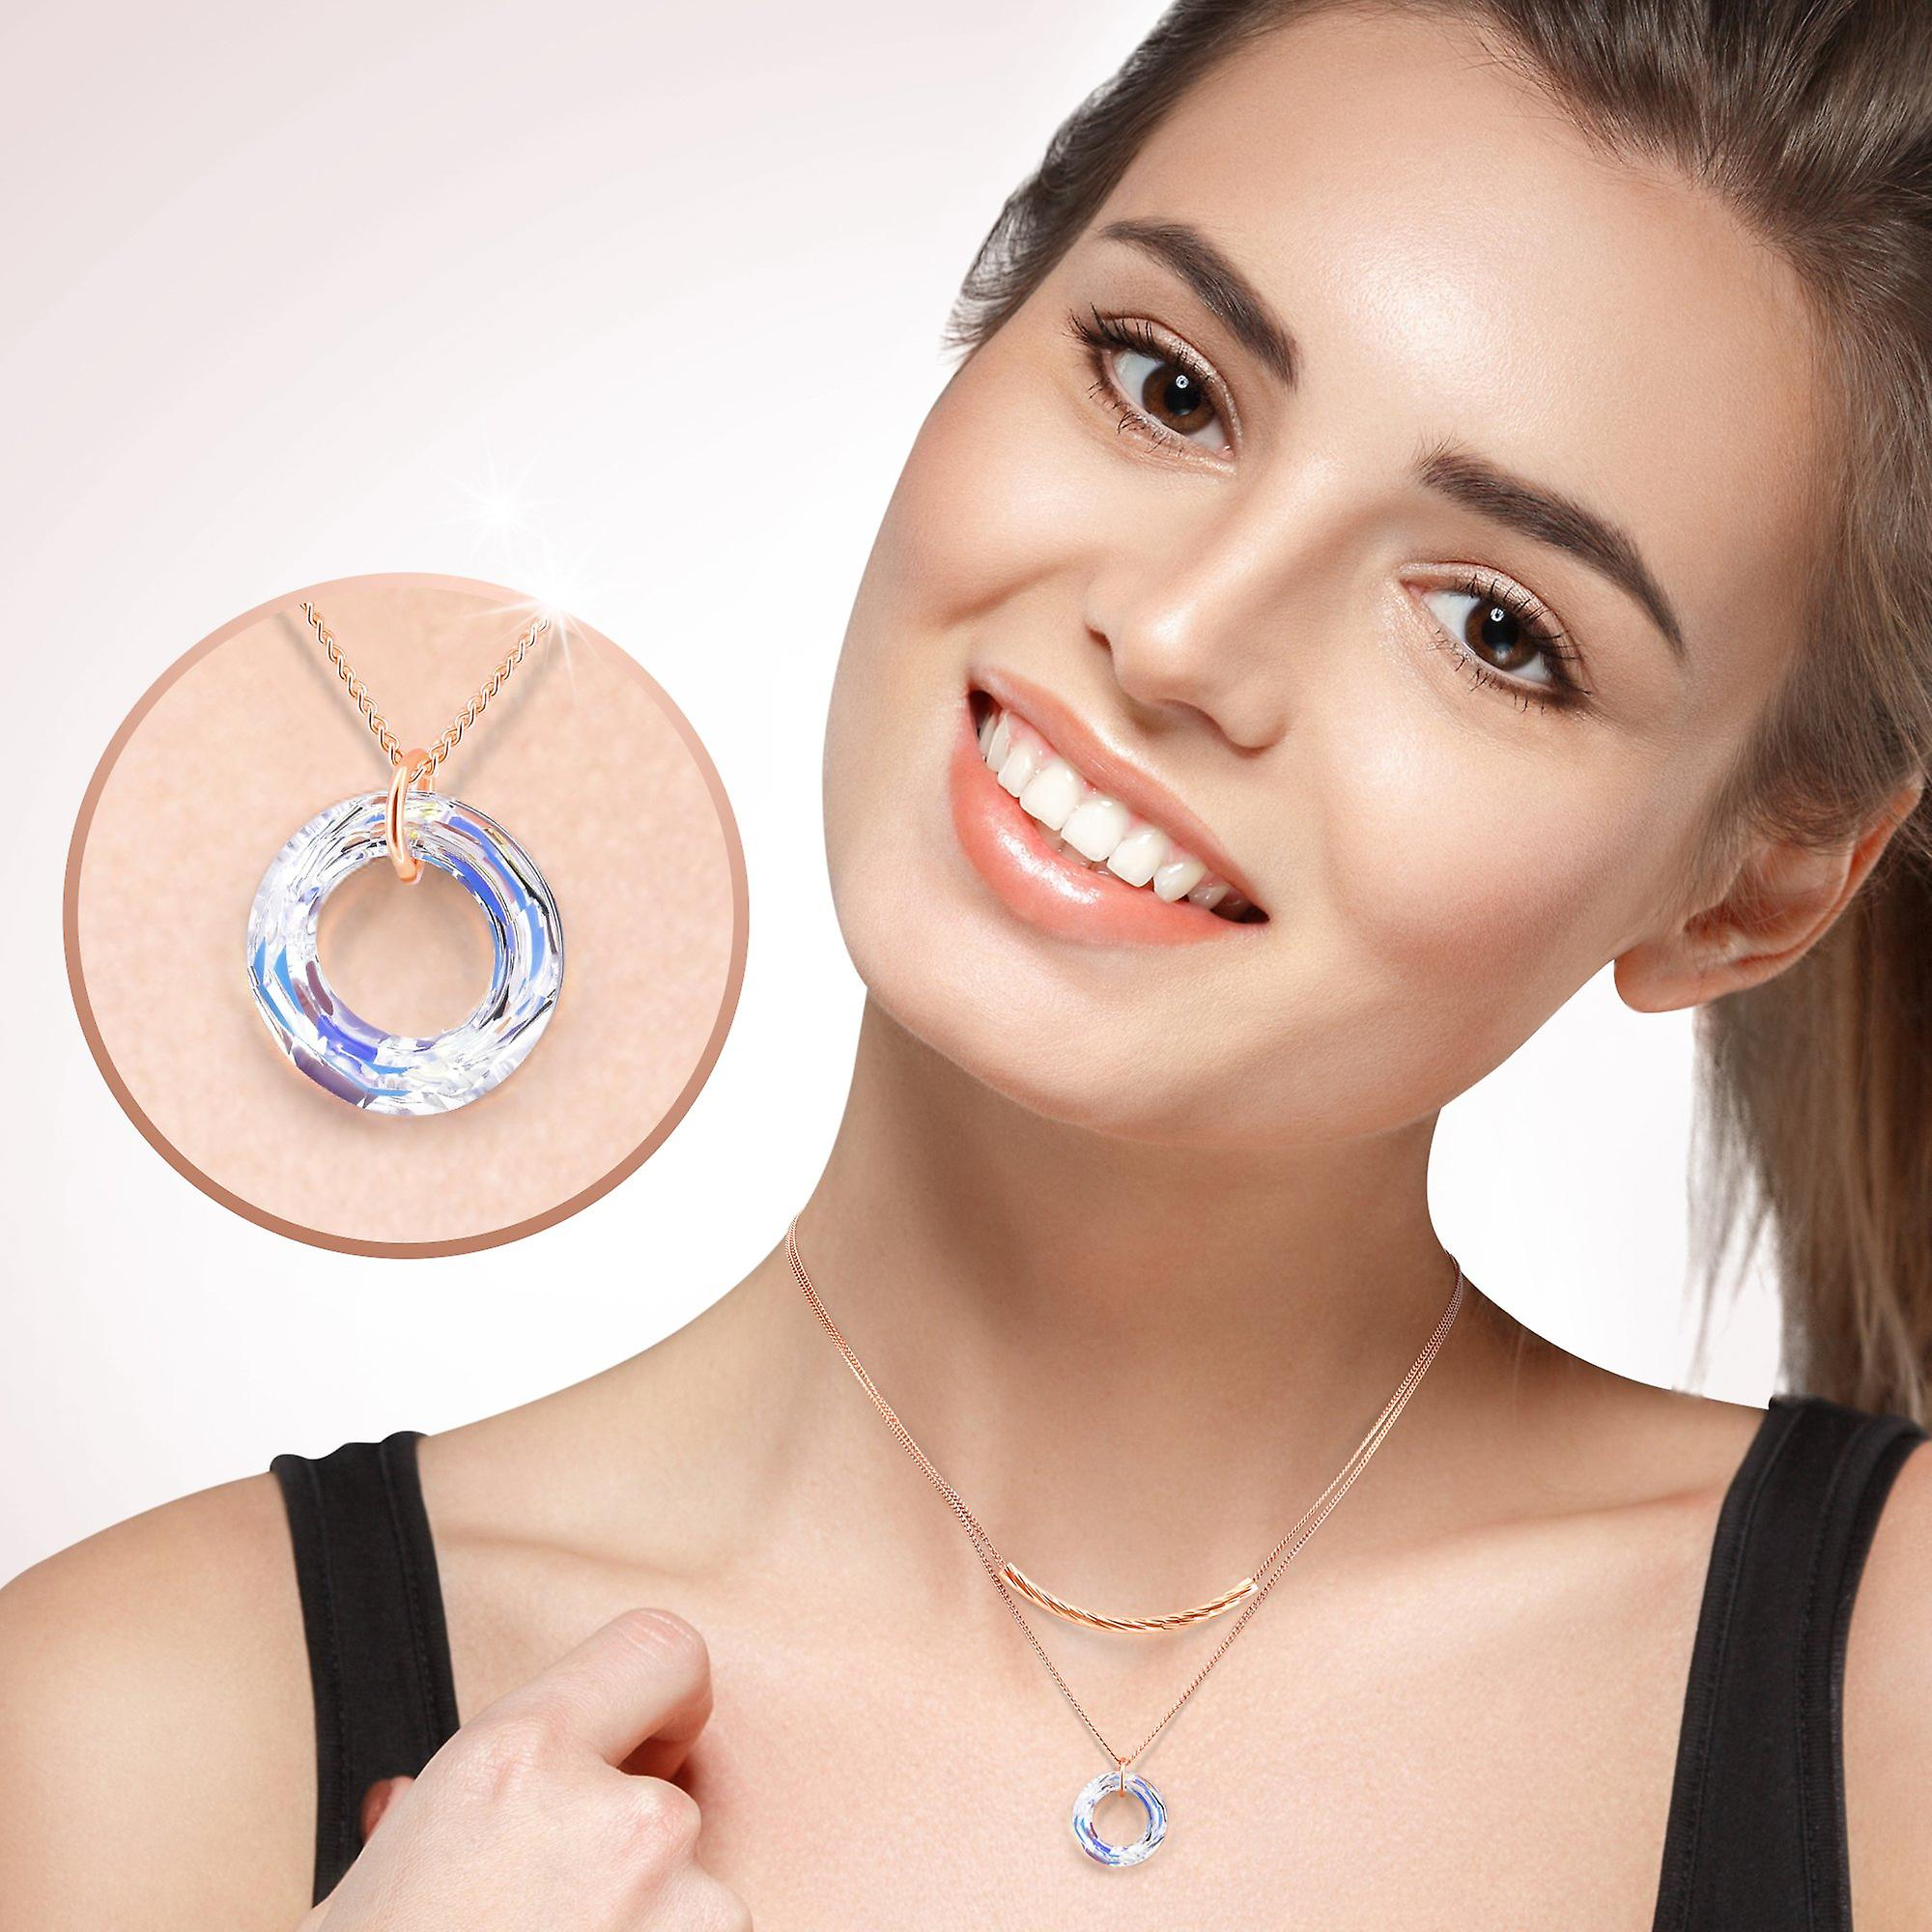 Gold plated necklaces with swarovski crystal. pendant necklace. by 2splendid. gift box included. nnqz004